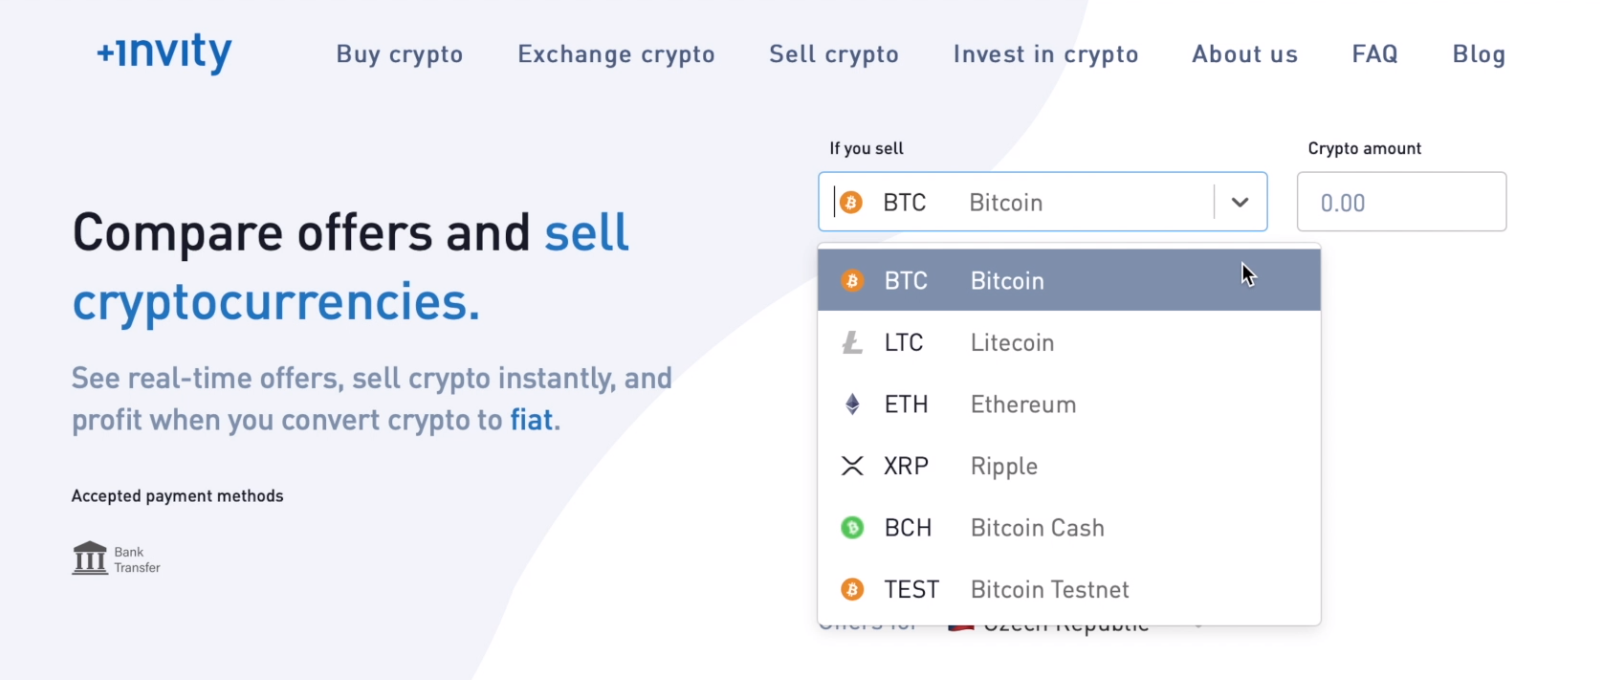 Just choose which coin you want to sell and how much. Alternatively, you can select how much cash you want to end up with.